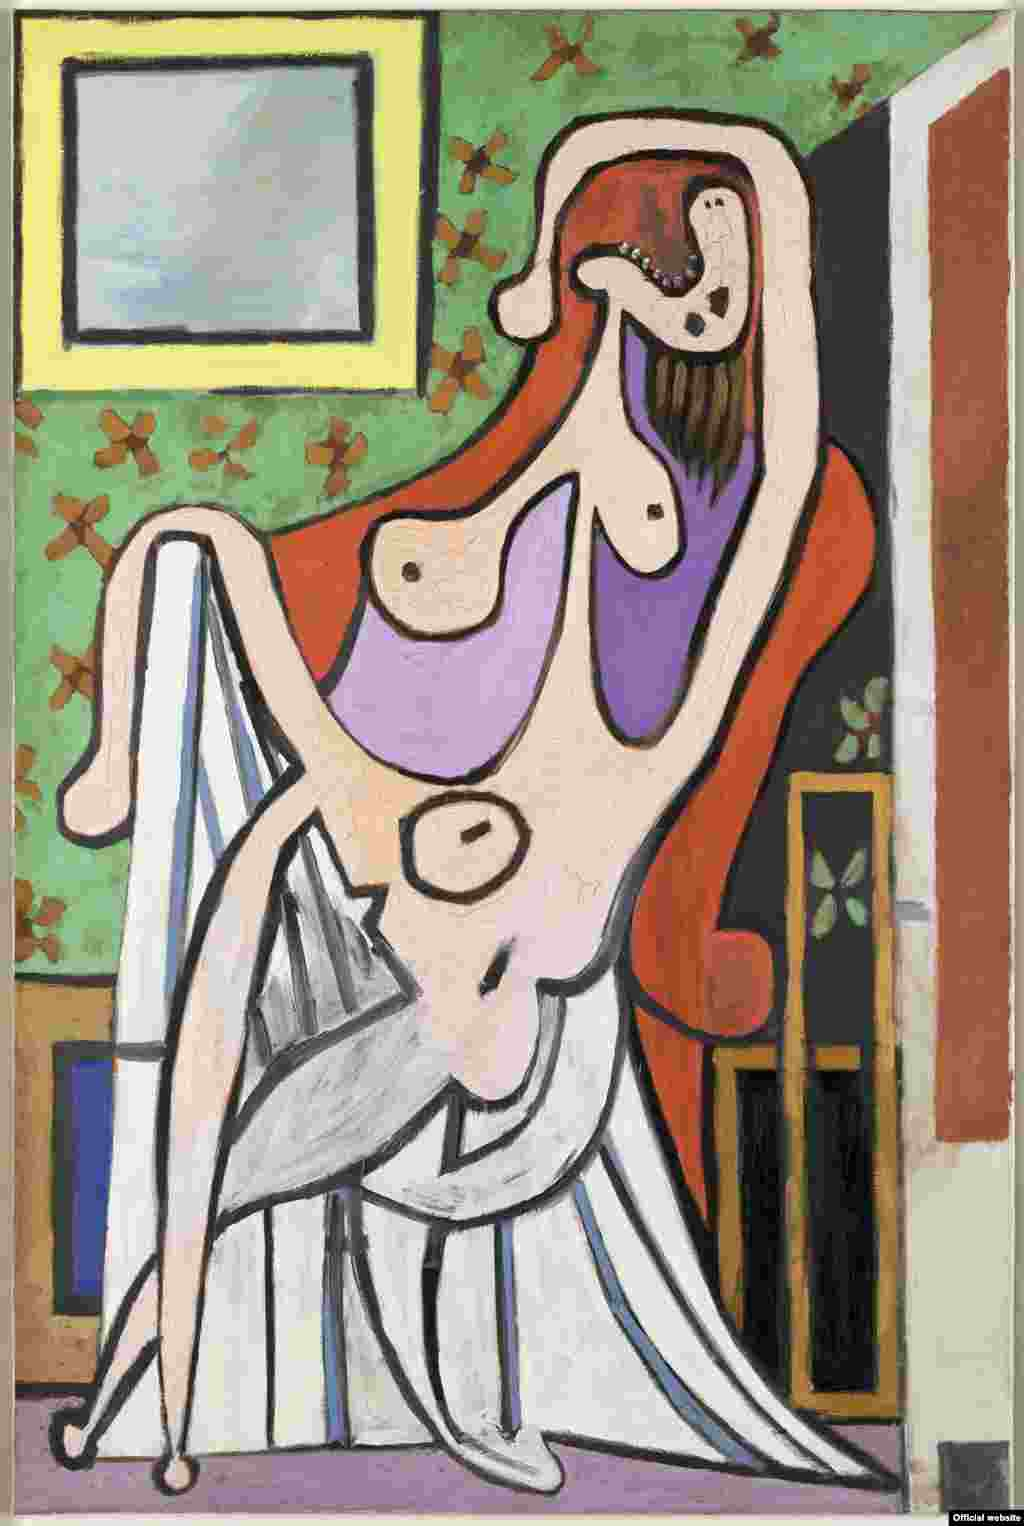 Nud mare în fotoliu roșu. 5 mai 1929. Musée national Picasso-Paris Dation Pablo Picasso, 1979. MP113 Droit auteur : ©Succession Picasso, 2017 Crédit photo : ©RMN-Grand Palais (Musée national Picasso-Paris) / Mathieu Rabeau